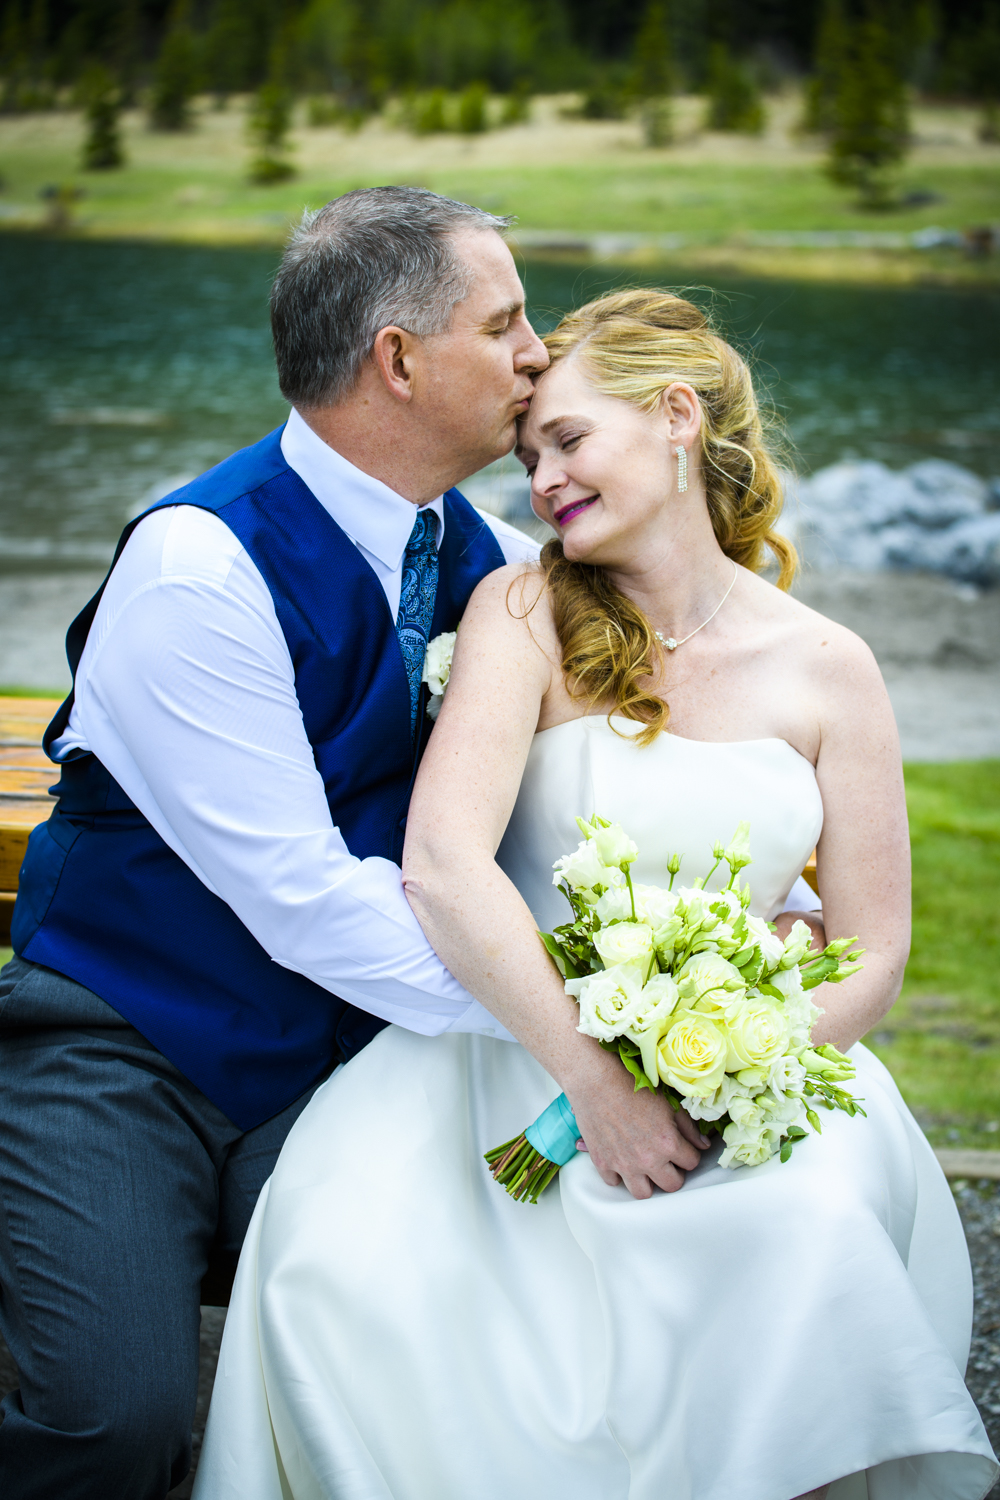 Karen and Todd's canmore wedding